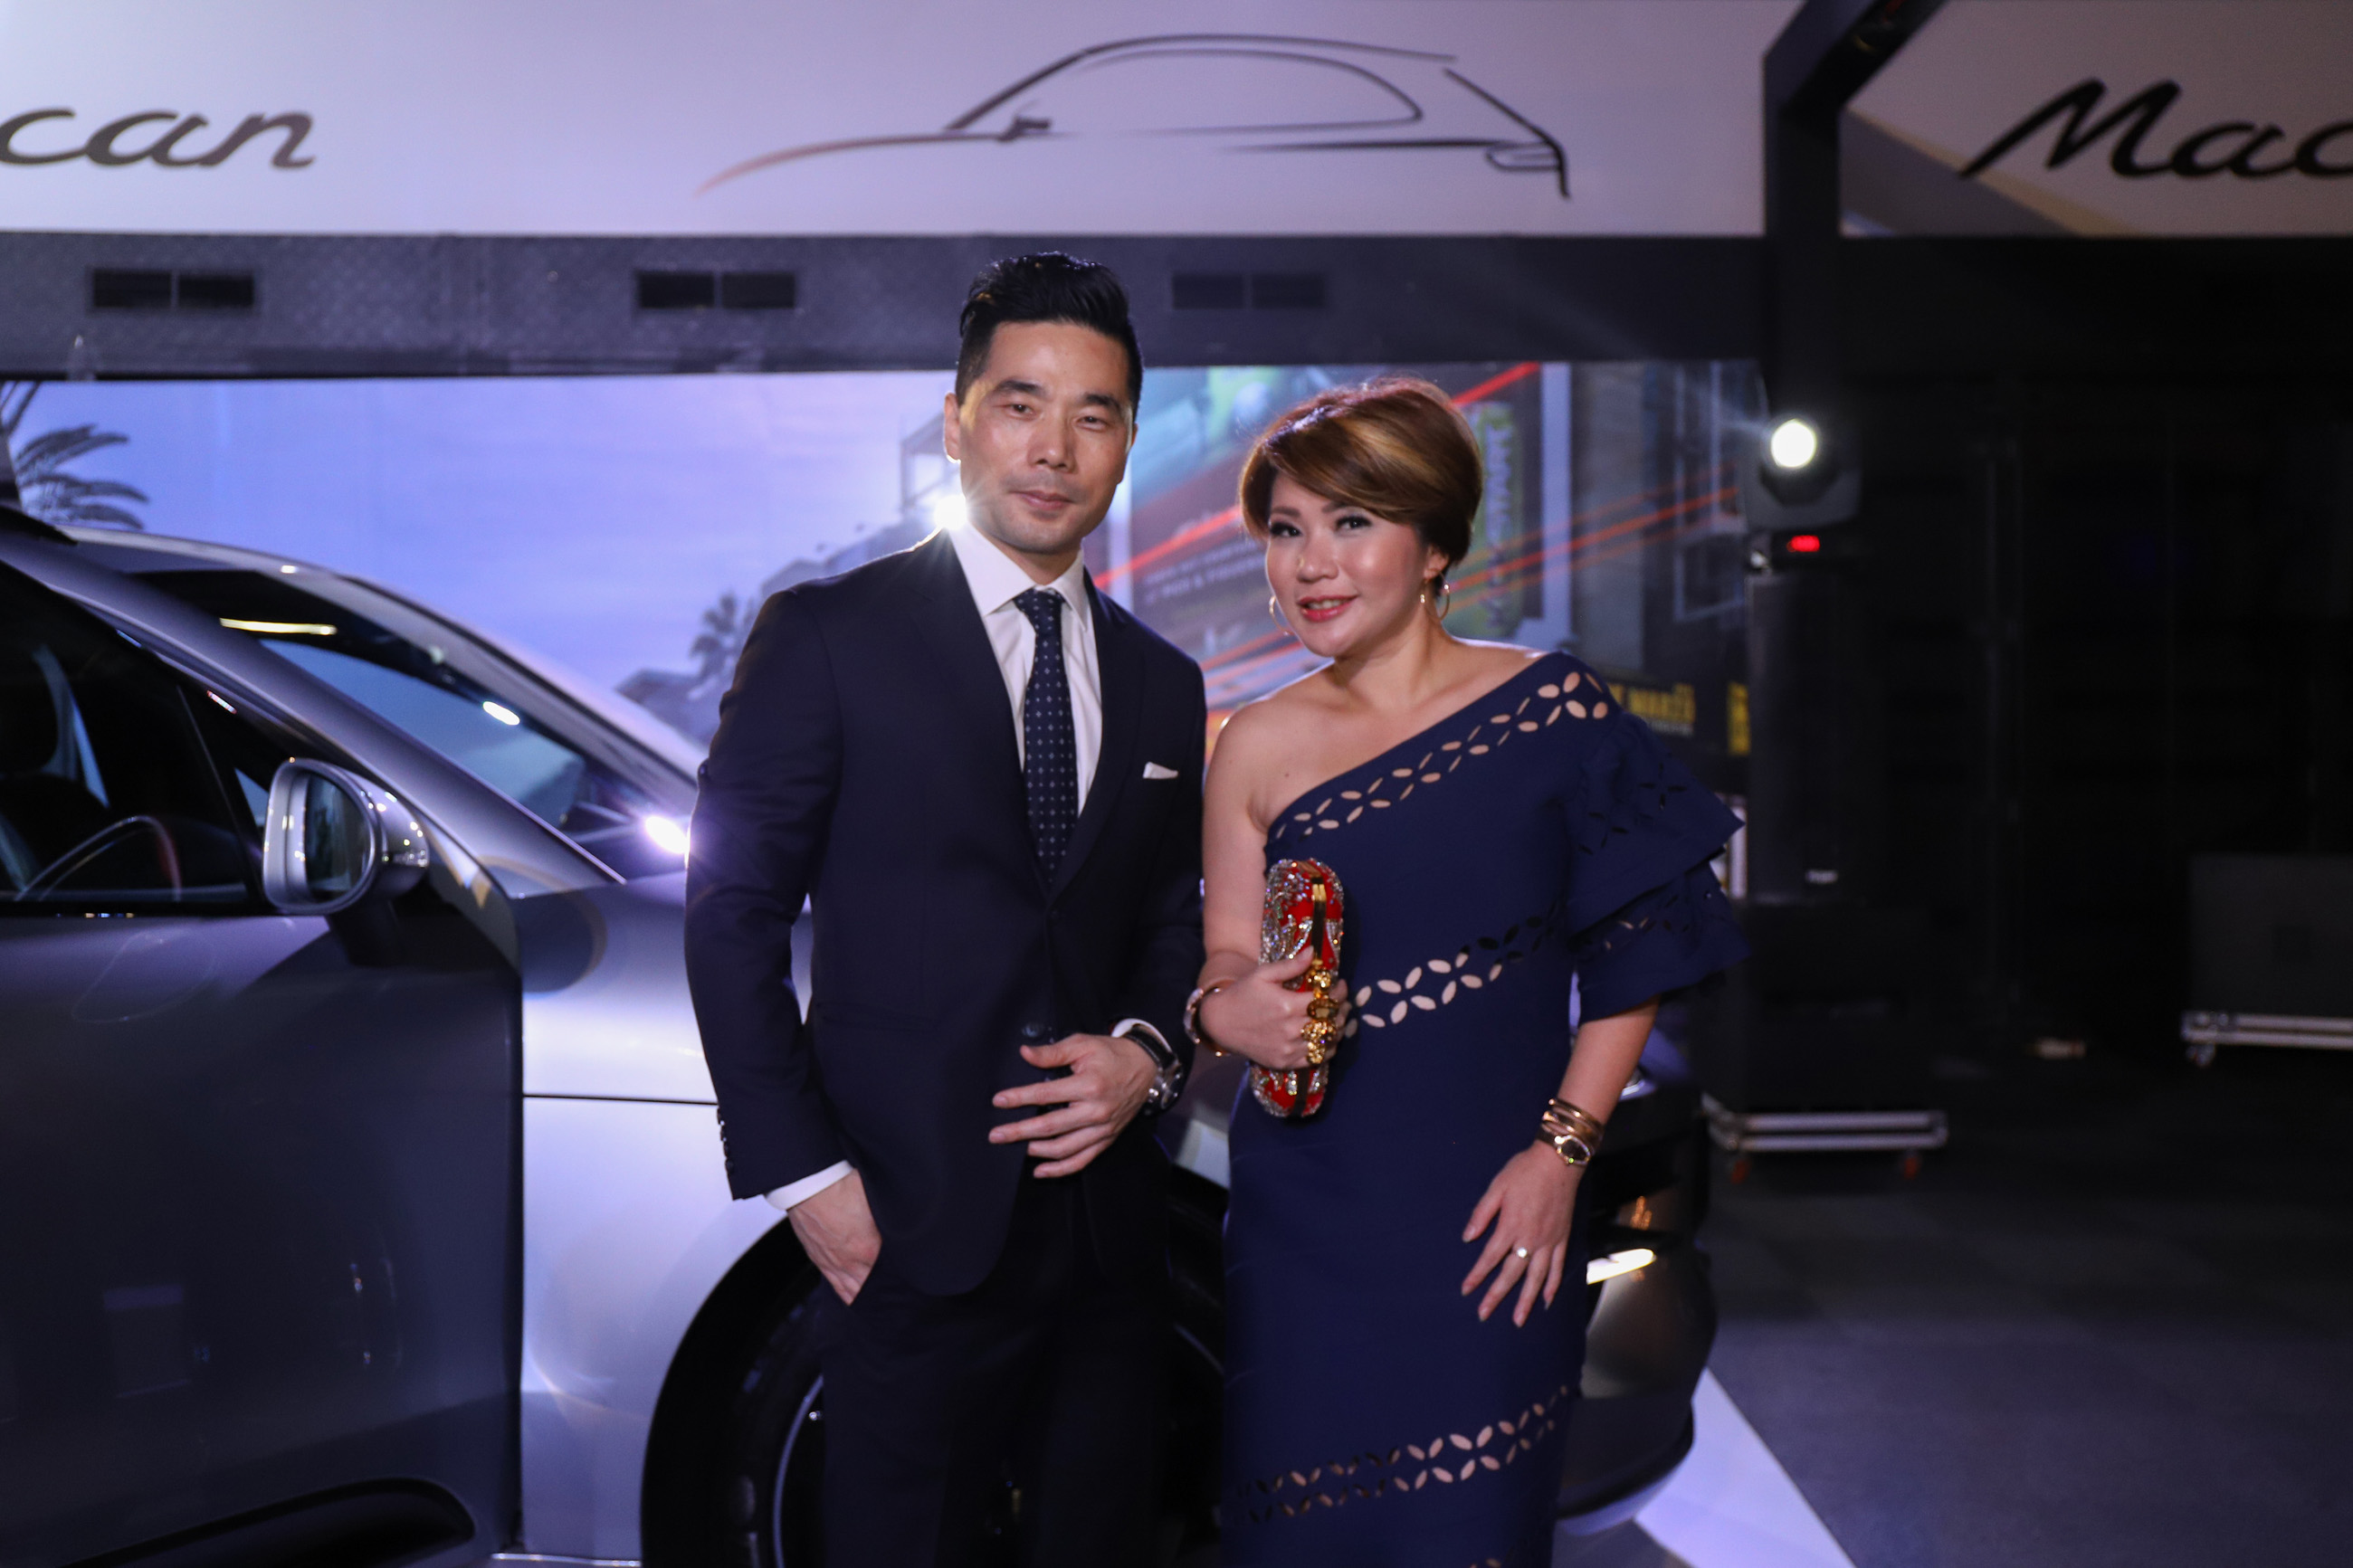 Mr Christoph Choi, Managing Director of Porsche Indonesia (left) together with invited guest Ms Melissa Tjahardika